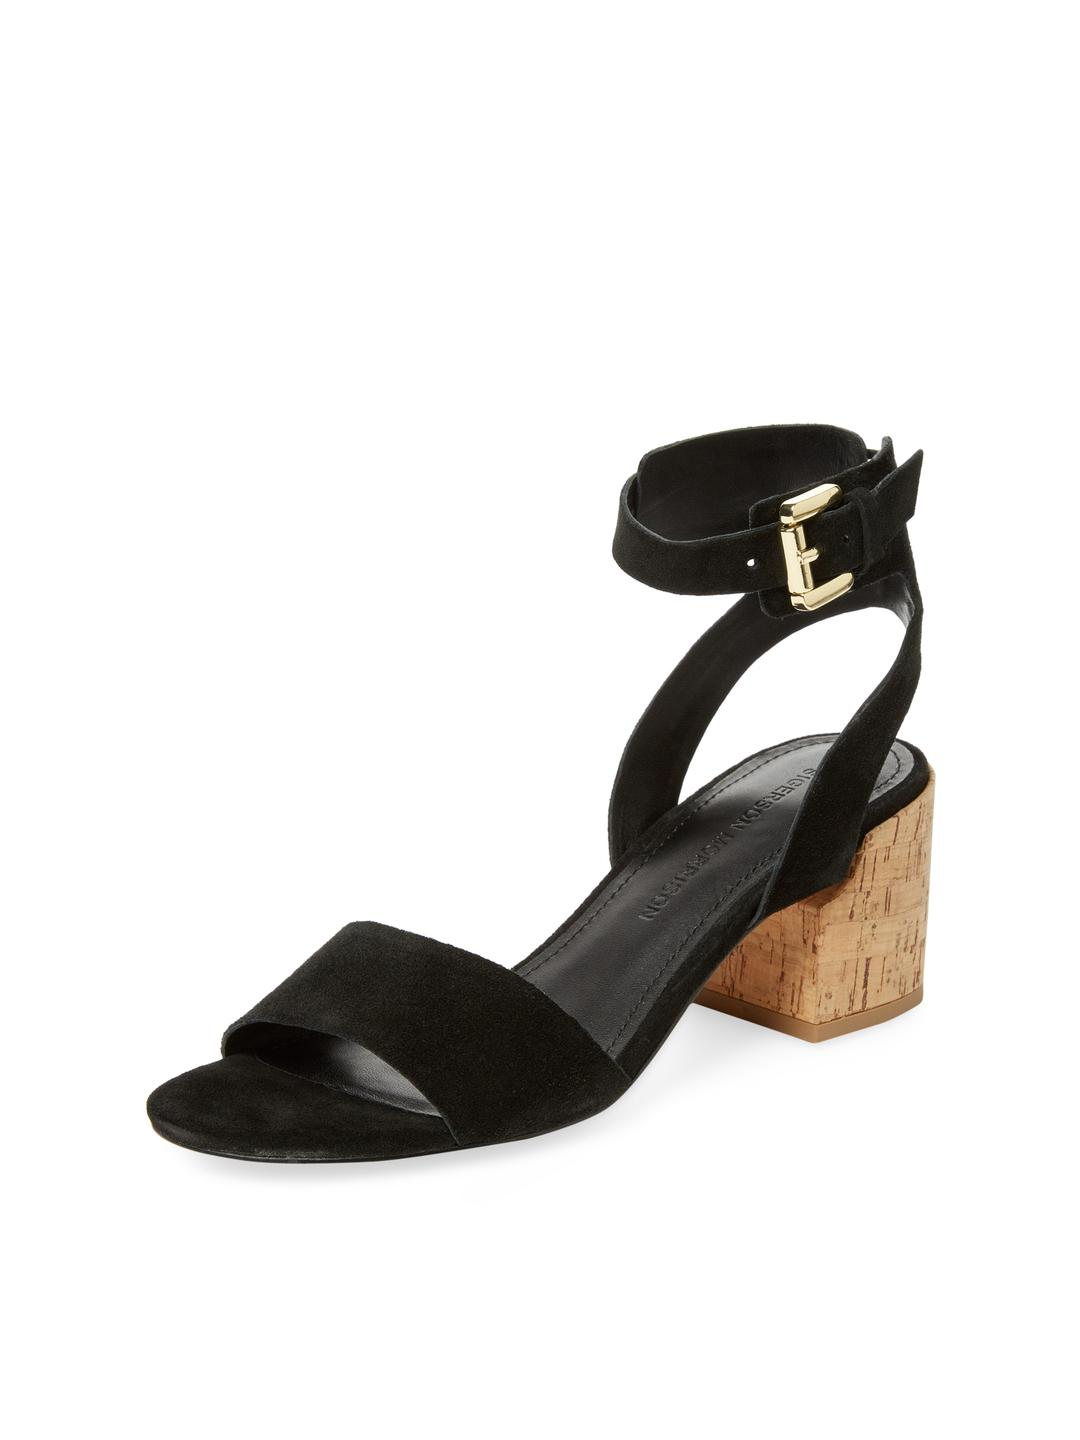 bc59ac1971b Lyst - Sigerson Morrison Riva Suede Sandal in Black